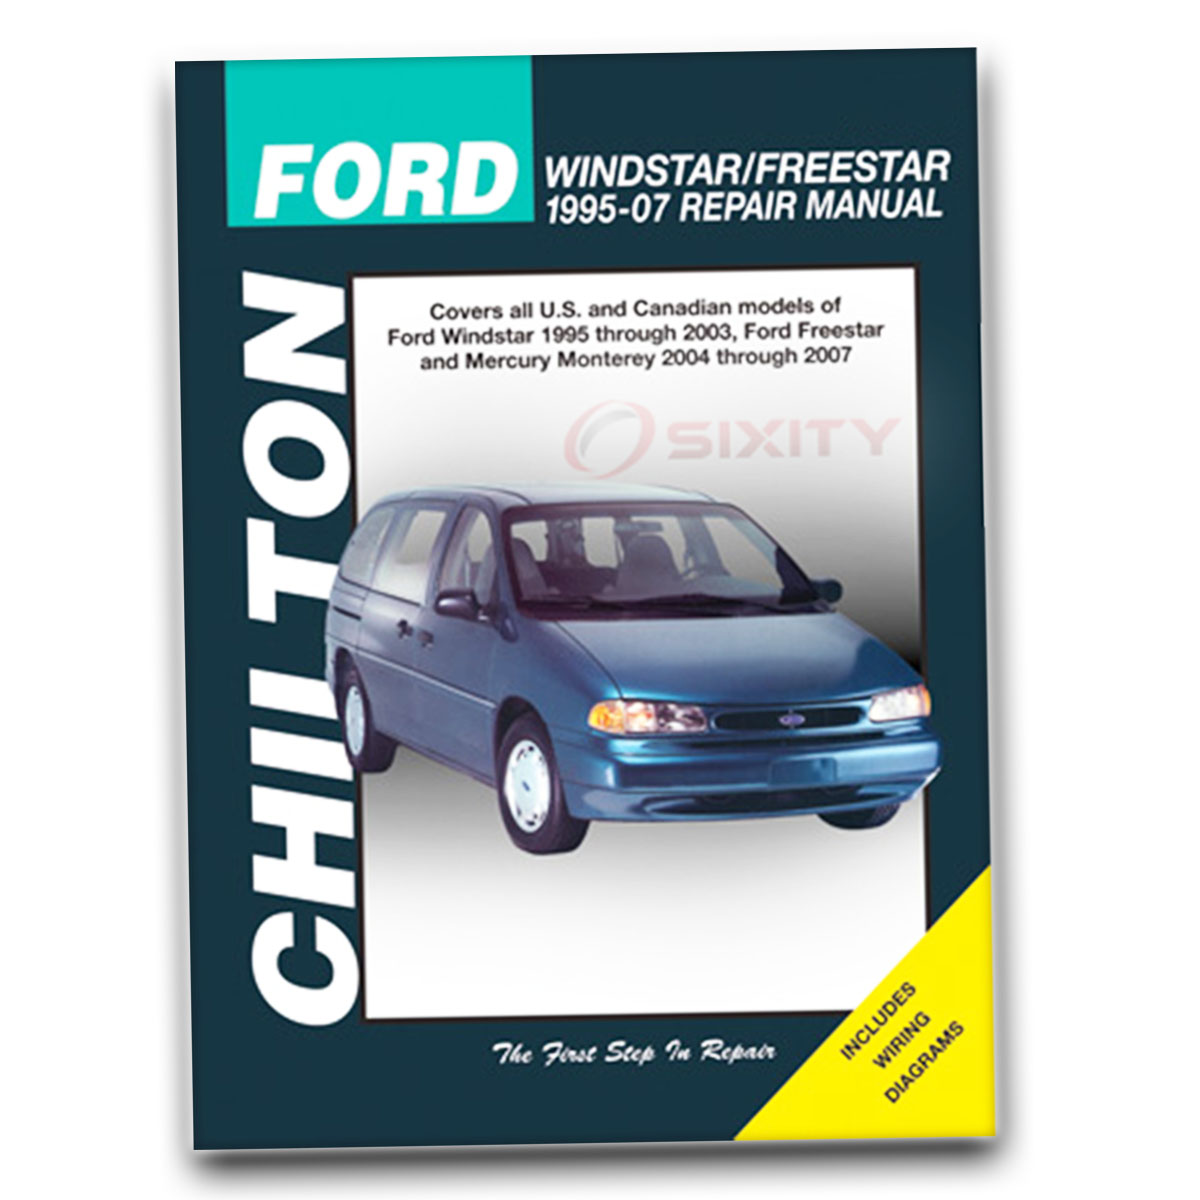 95 windstar engine wiring diagram chilton repair manual for 1995 2003 ford windstar shop service  chilton repair manual for 1995 2003